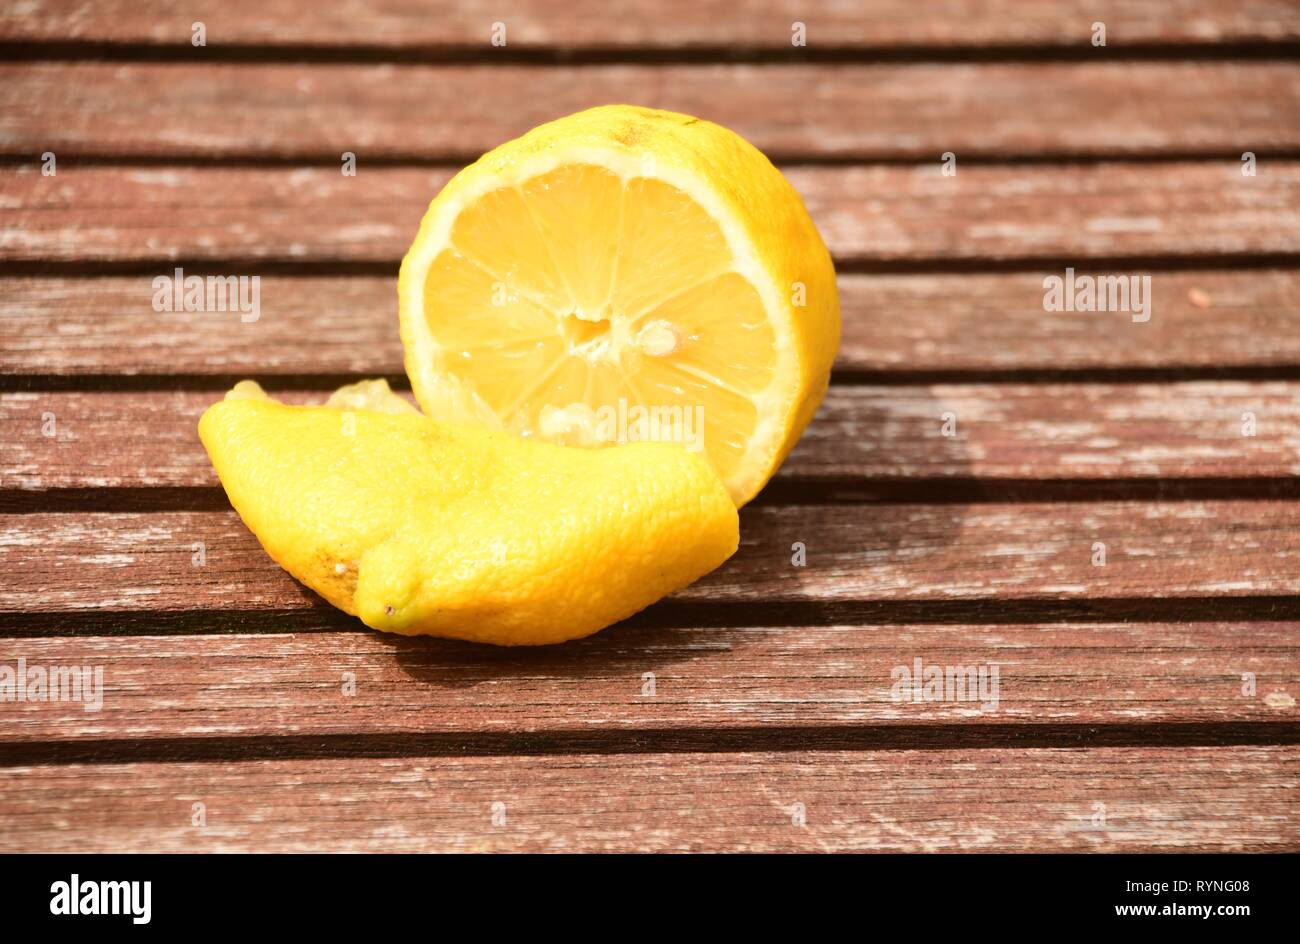 divided lemon on the table - healthy and delicious food - Stock Image